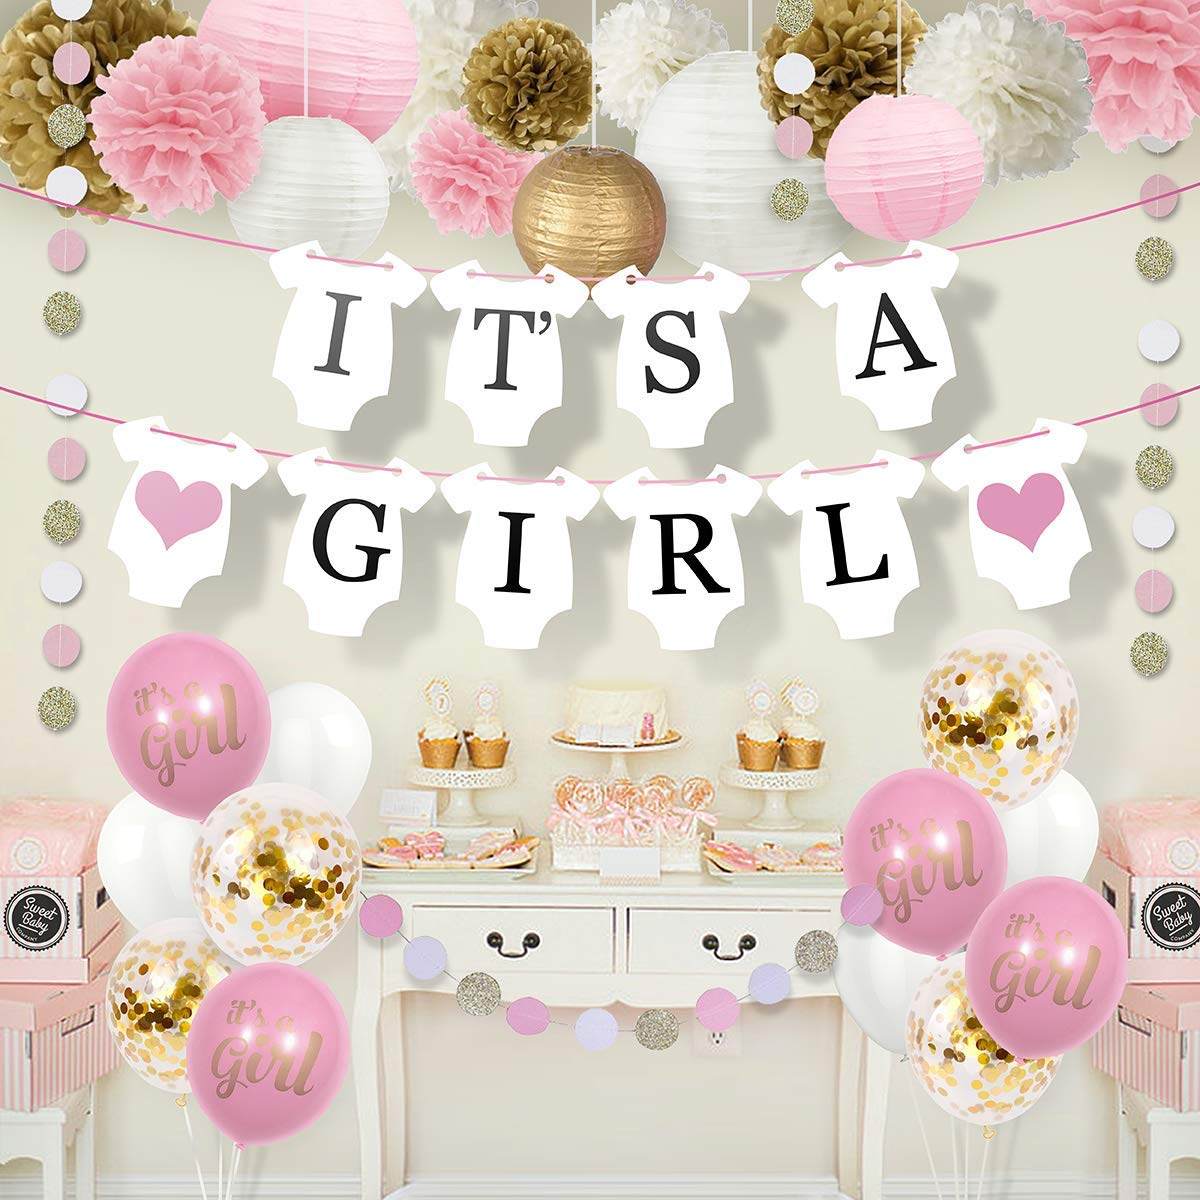 Sweet Baby Co. Baby Shower Decorations For Girl With It's A Girl Banner,  Paper Lanterns, Paper Flower Pom Poms, Confetti Balloons, Paper Garland  (Pink, ...